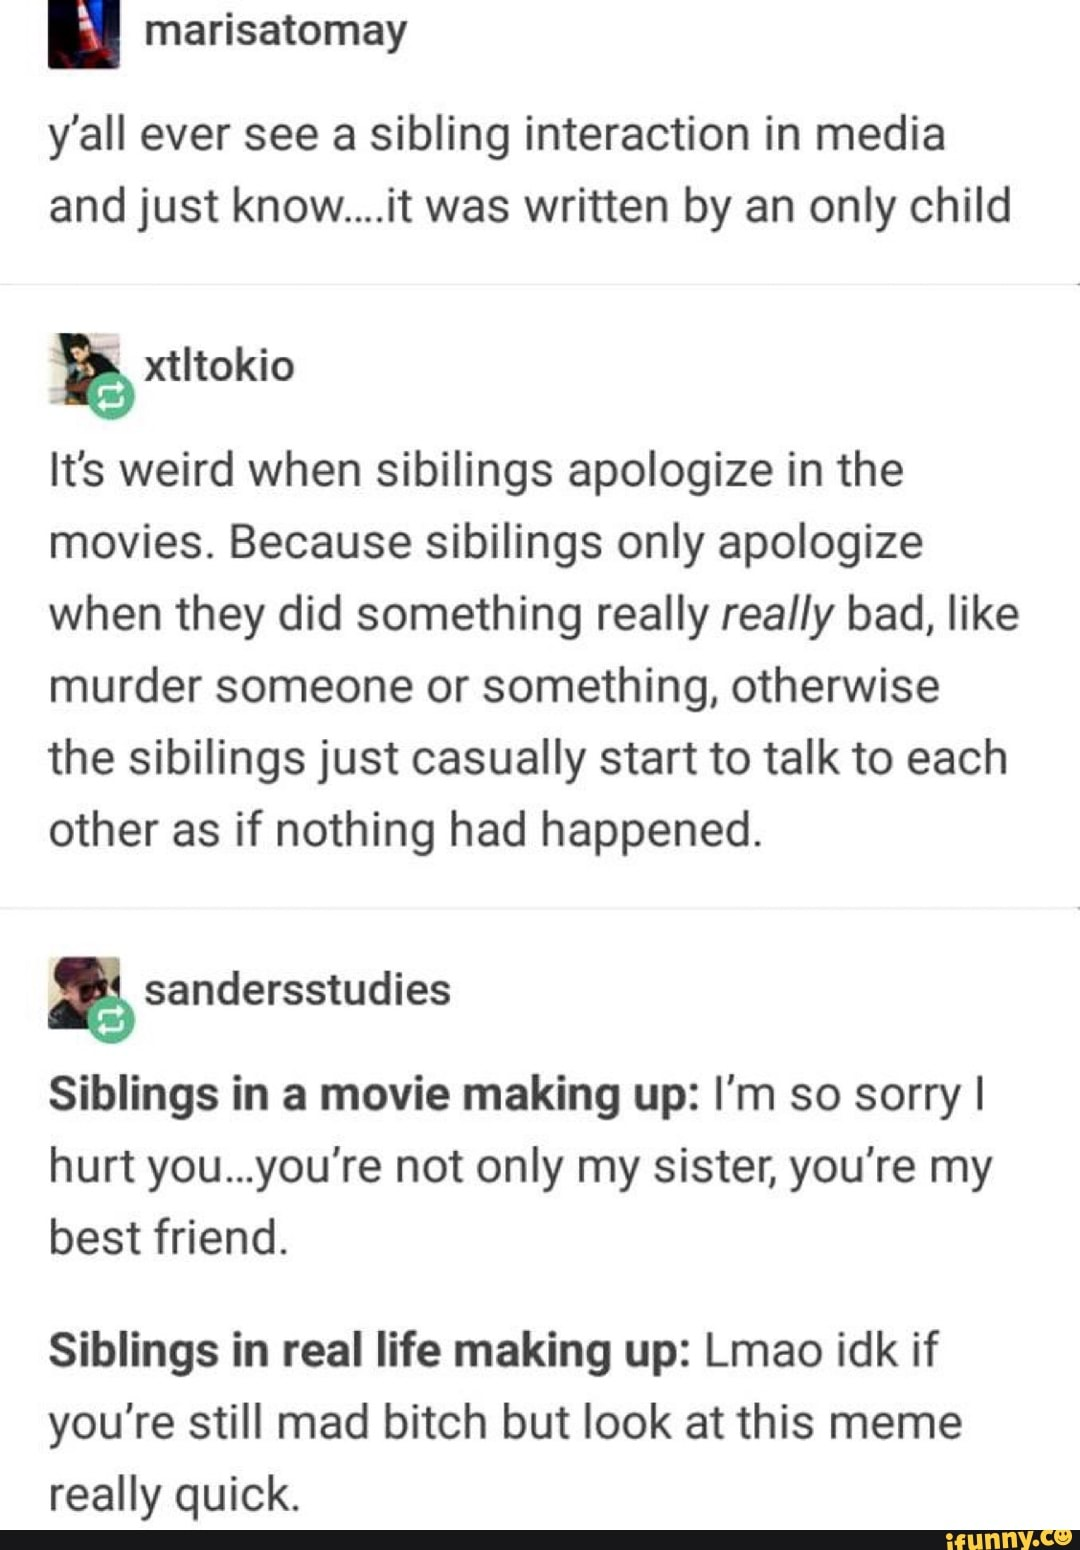 Y'all ever see a sibling interaction in media and just know    it